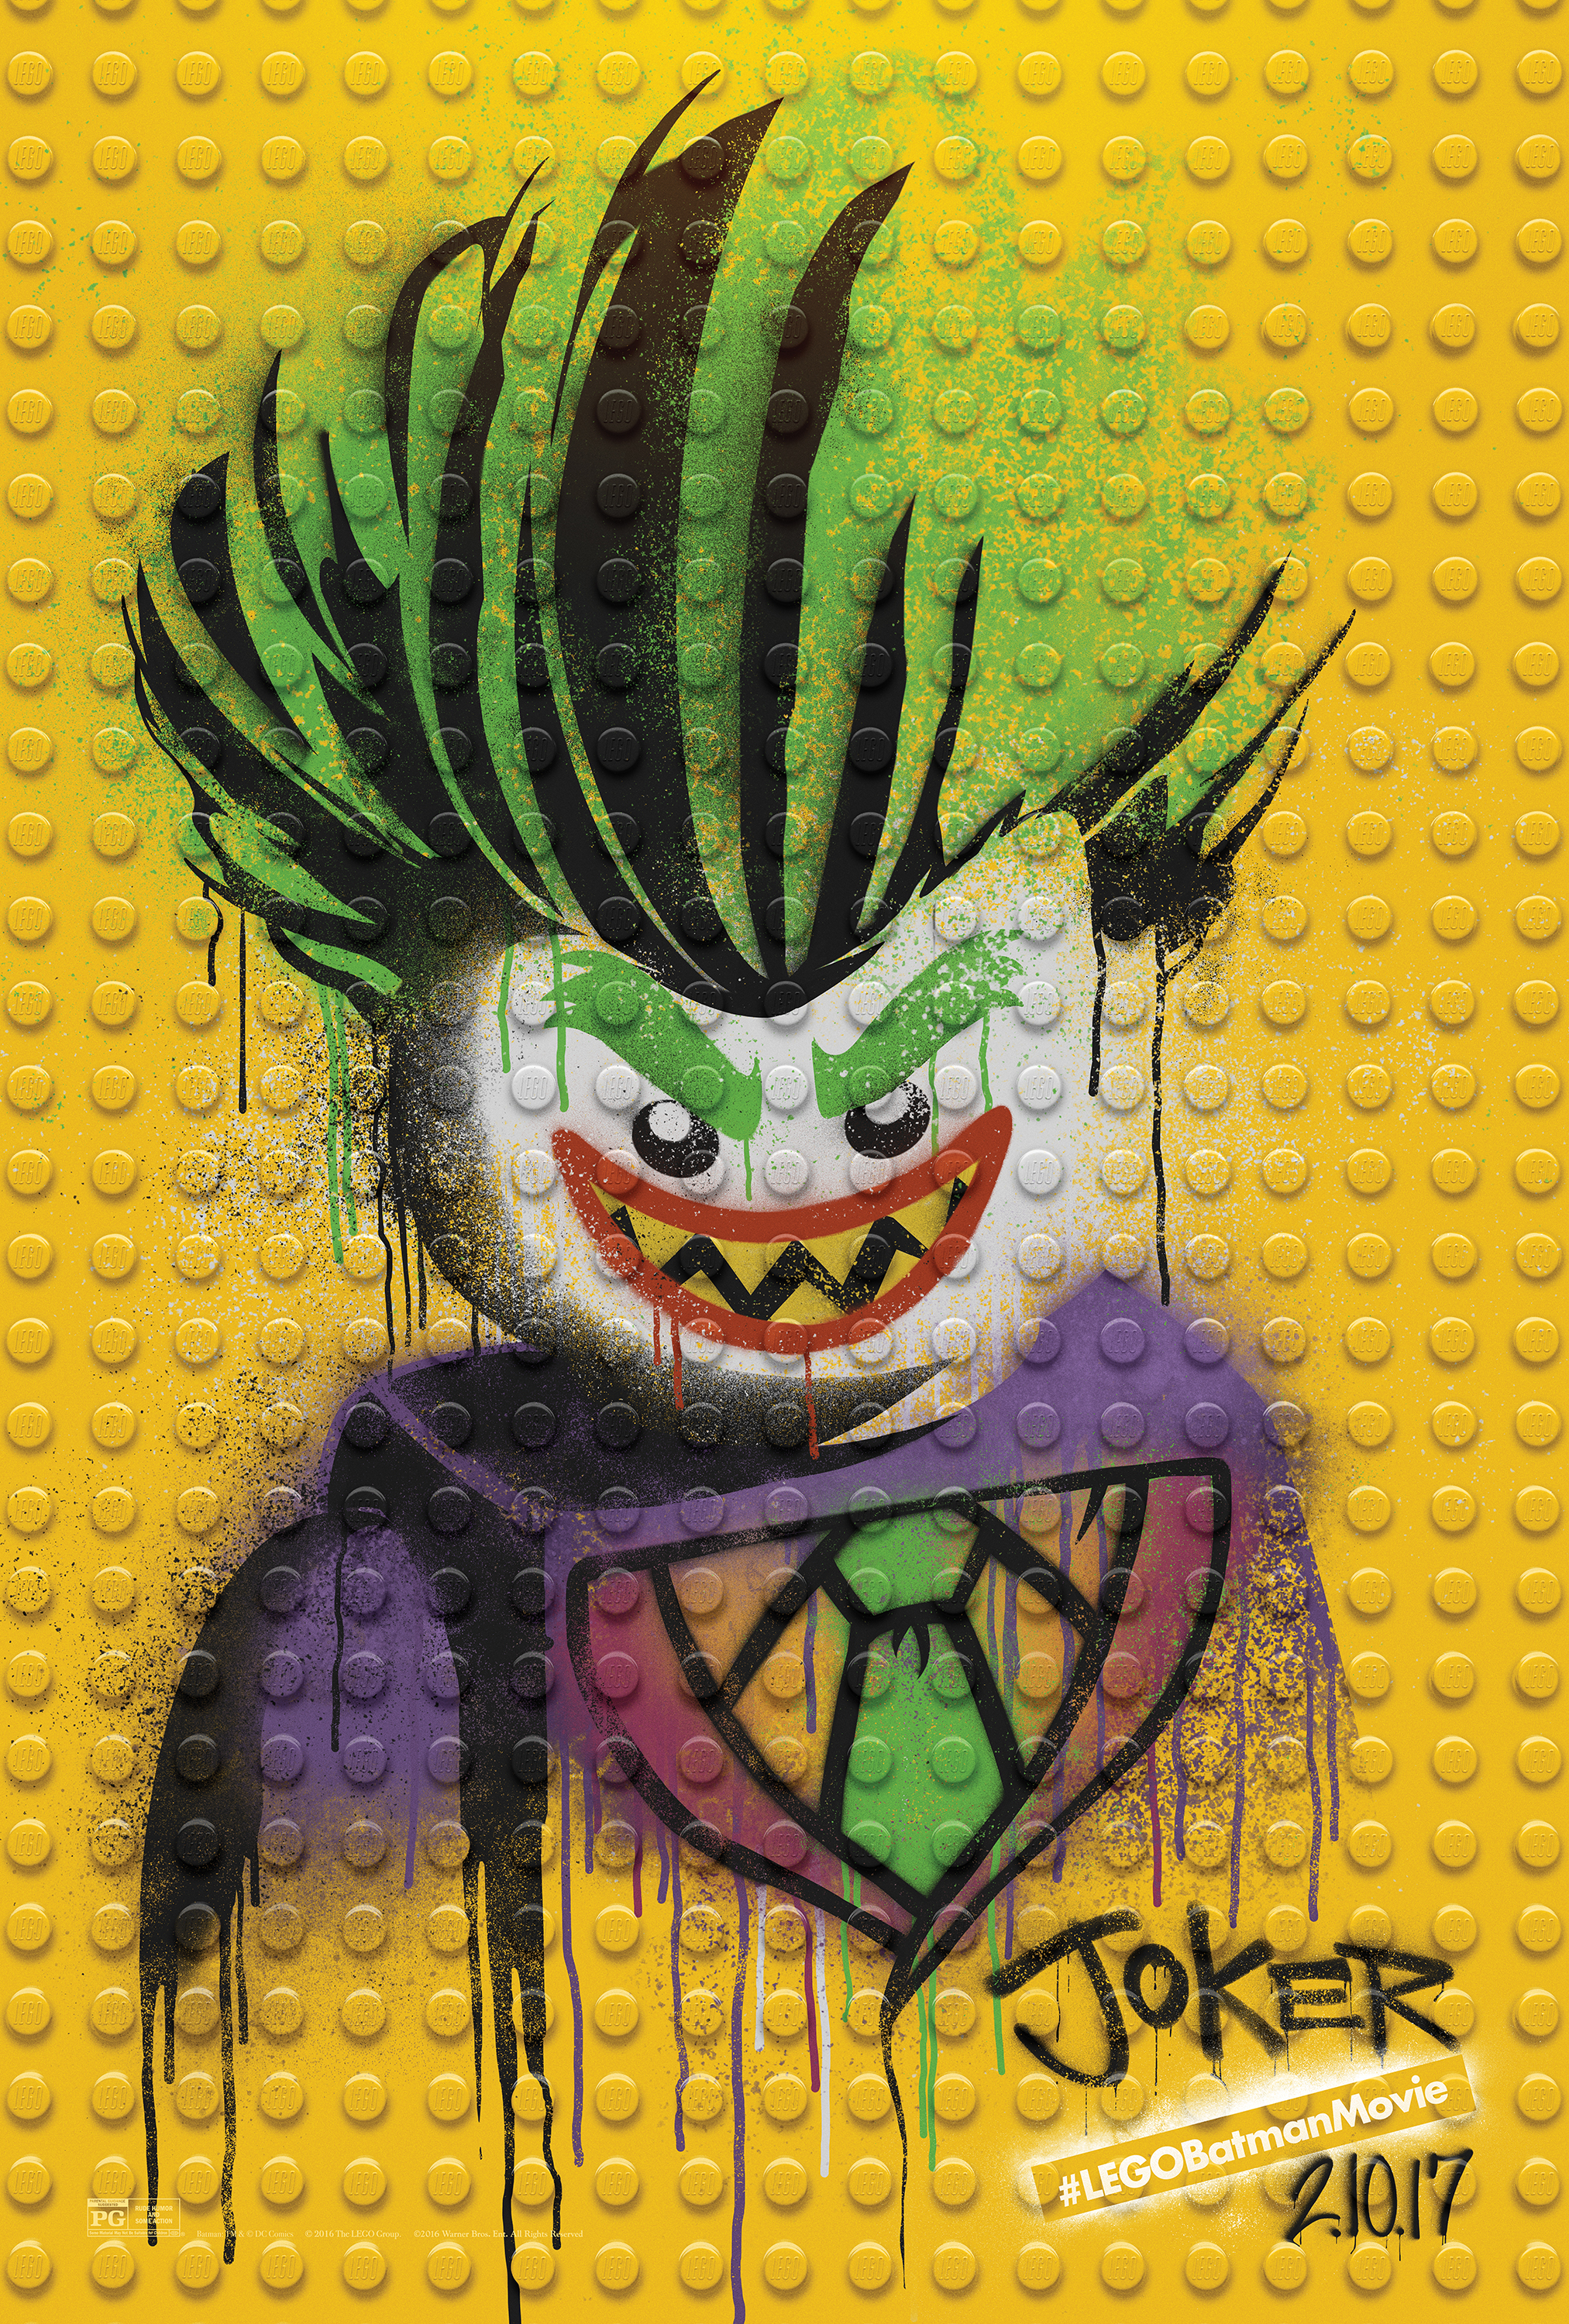 Image for The LEGO Batman Movie - Graffiti Wild Postings | The Joker